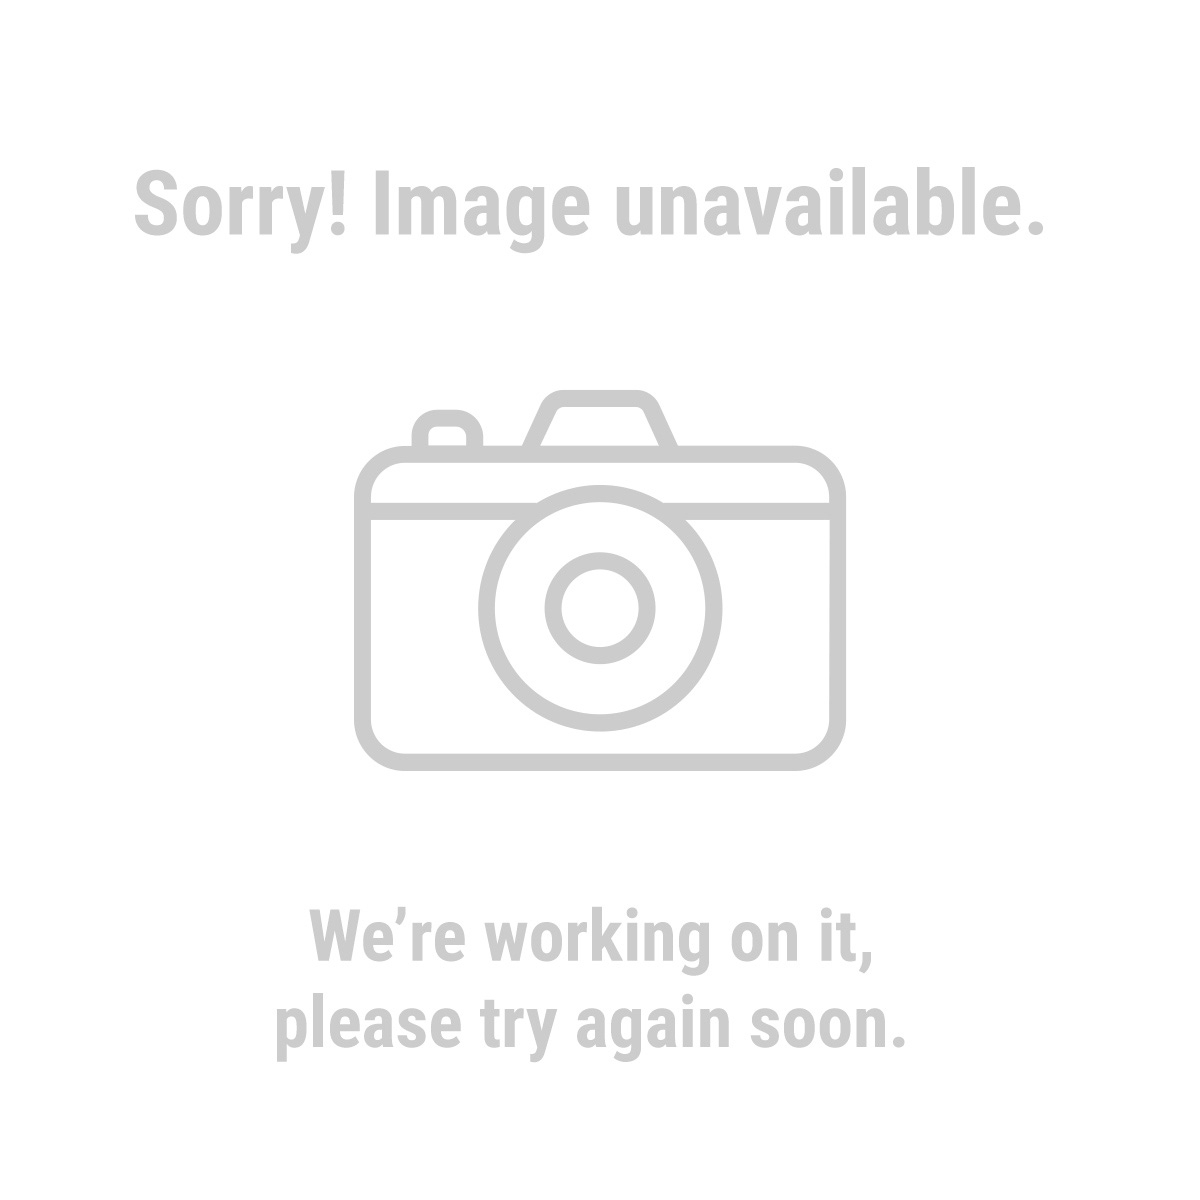 IRON ARMOR 60778 Truck Bed Coating - 1 Gallon